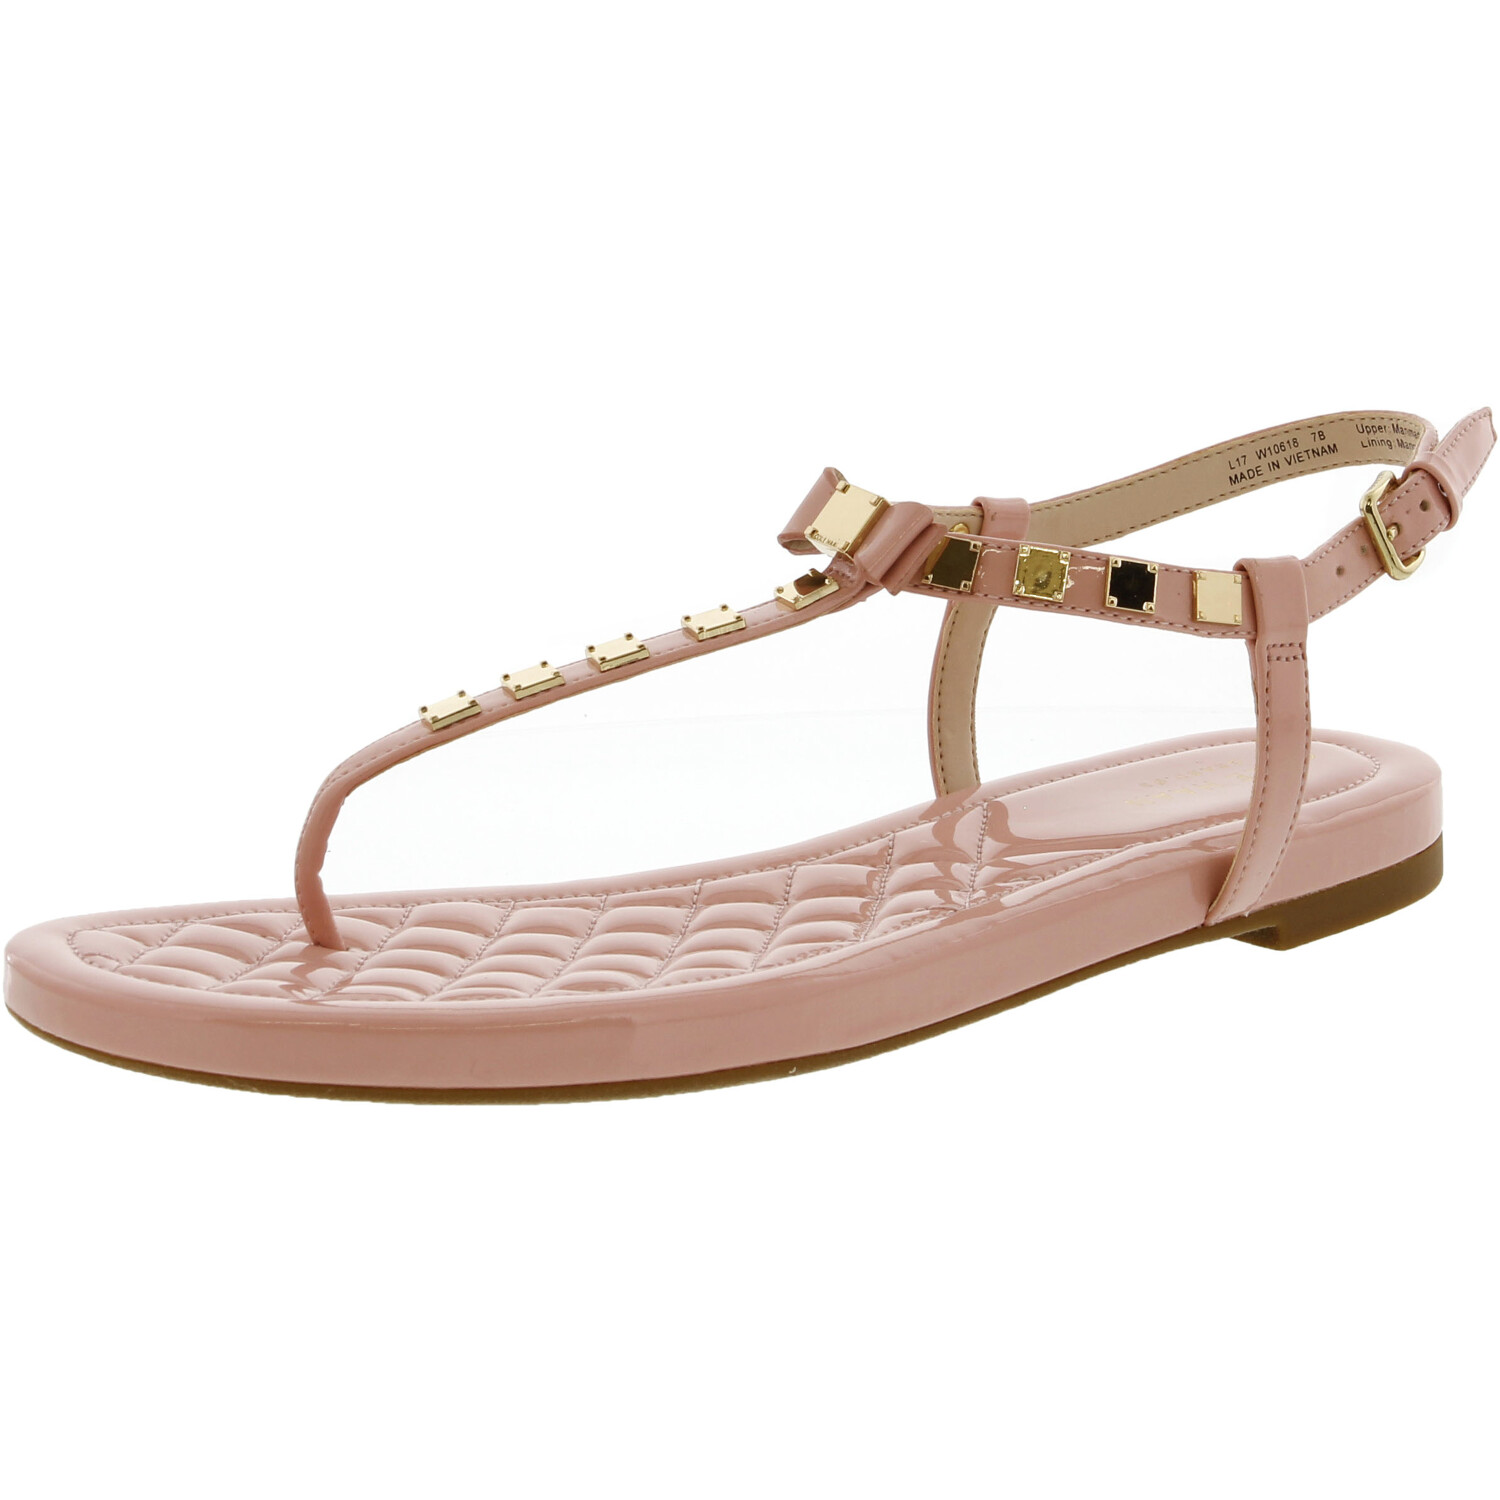 Cole Haan Women's Tali Mini Studded Coral Almond Ankle-High Patent Leather Sandal - 8.5M